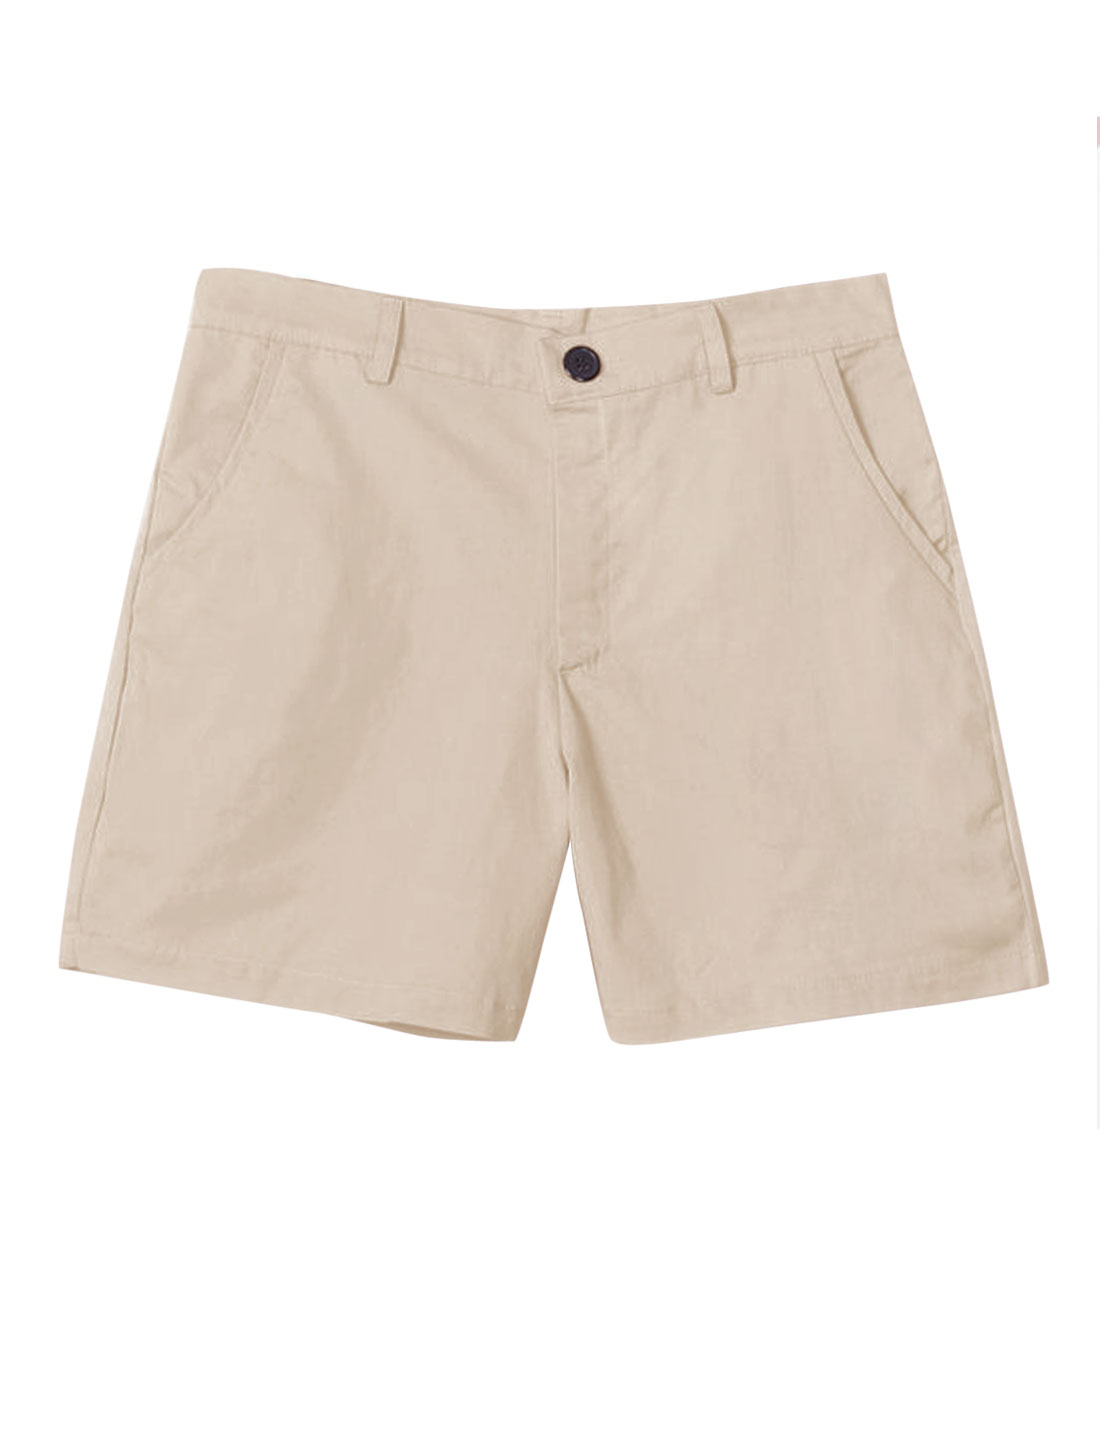 Men Zip Fly Double Slant Pockets Front Leisure Short Shorts Khaki W30